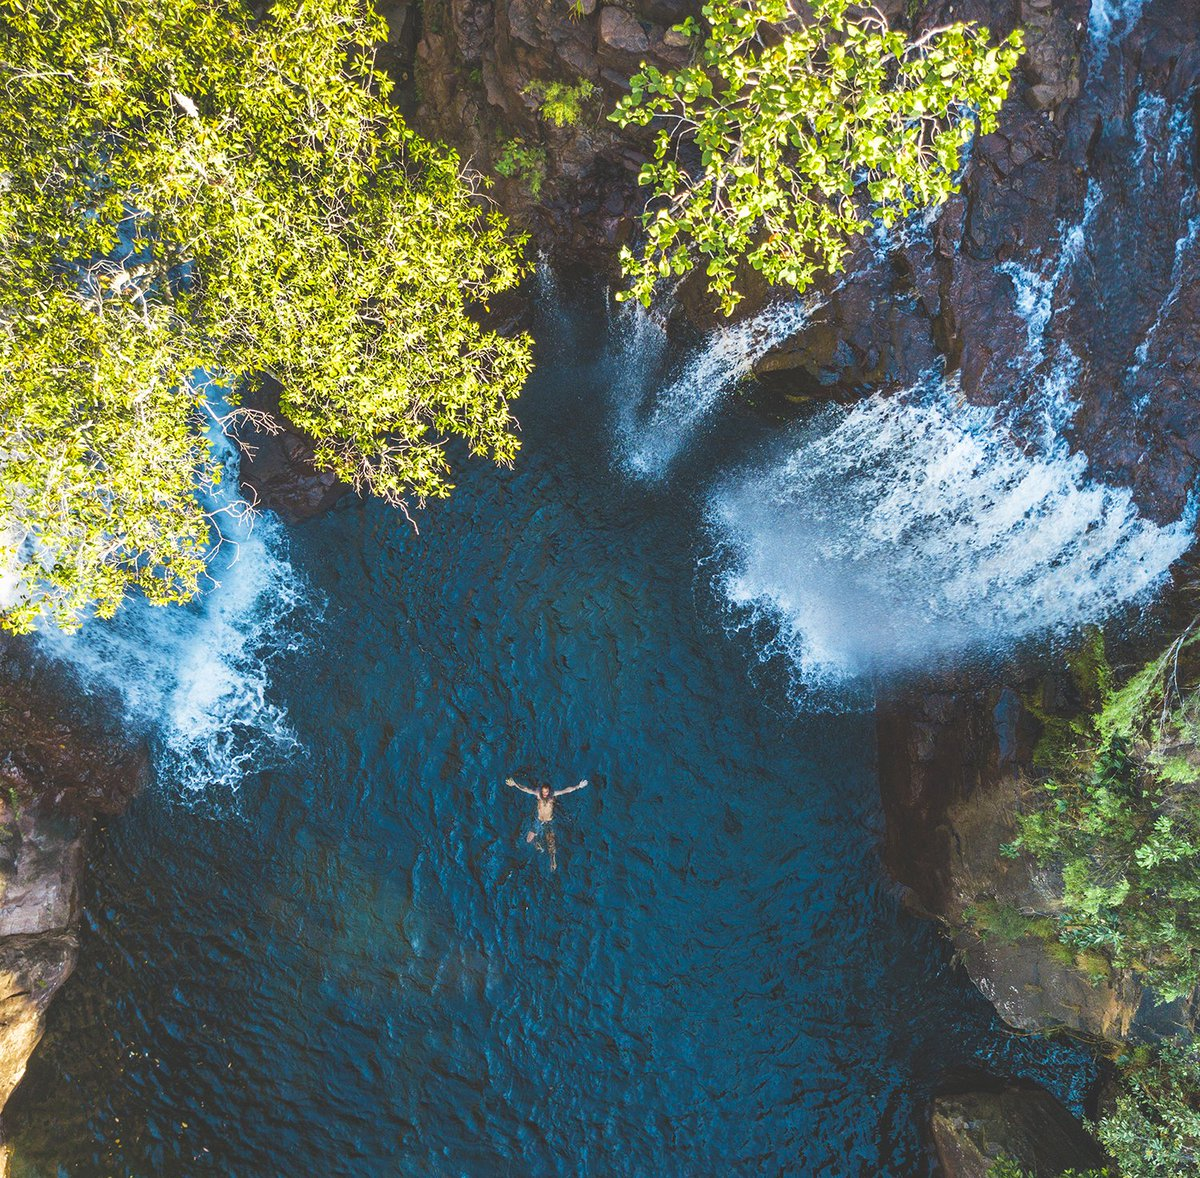 Ultimate outdoor adventures provided by the stunning Northern Territory #swaindestinations #litchfieldnationalpark #northernterritory #australia #travel #adventuretravel #luxurytravel #instatravel #travelgram #insidertravel